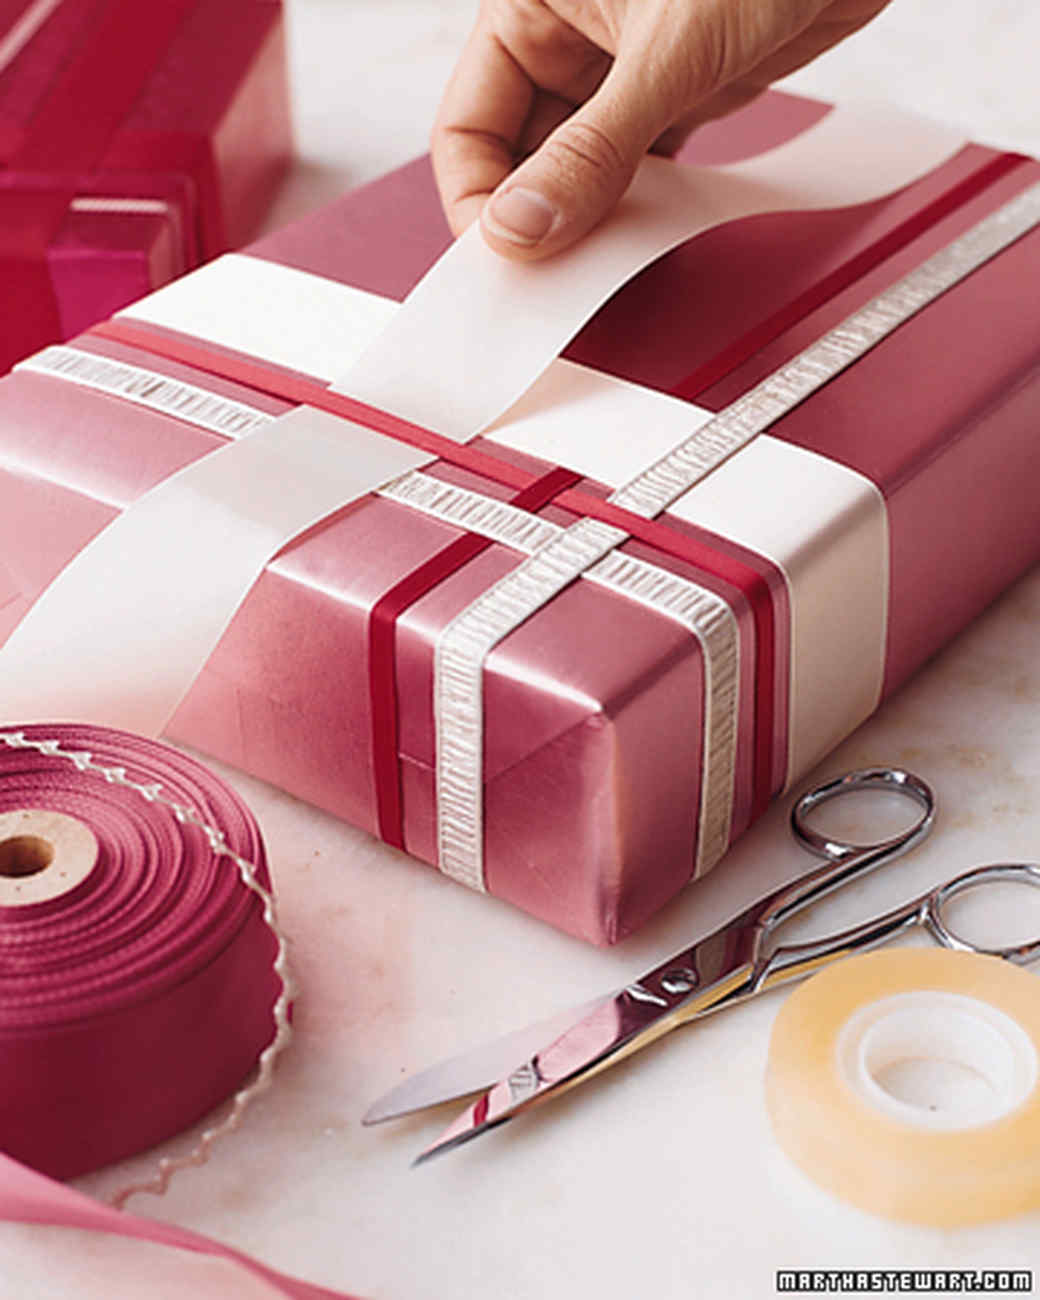 Ribbons put an edge to your gift that is unique for your recipient to appreciate.